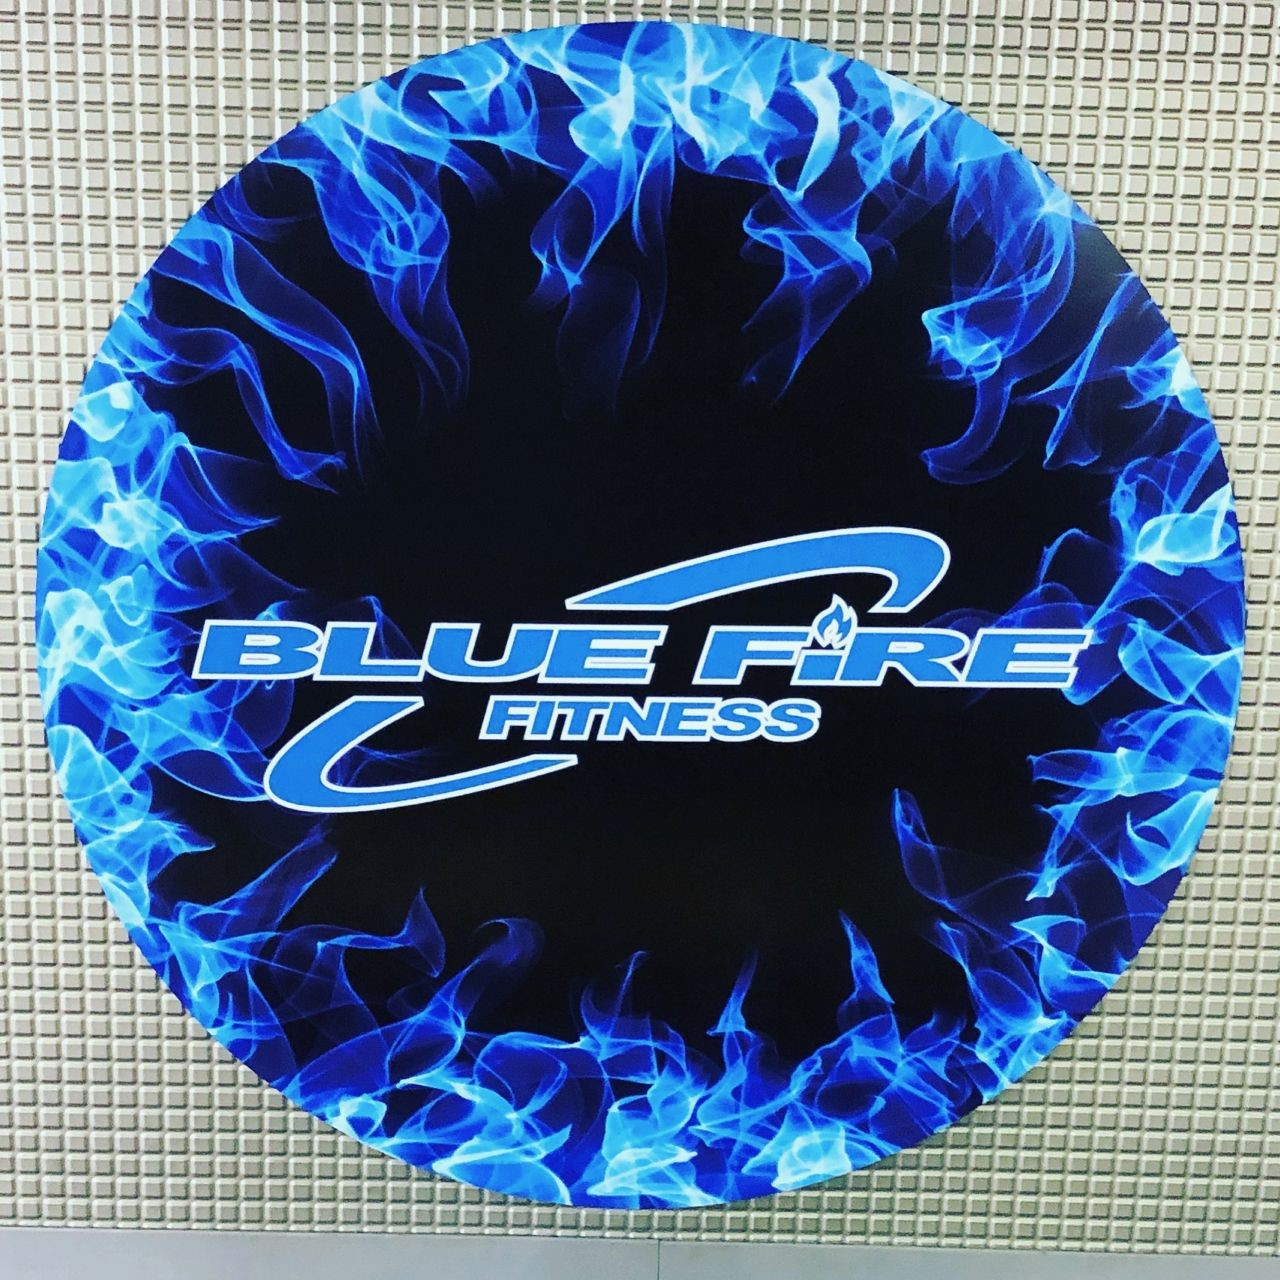 3D Signs & Dimensional Letters | Wall Graphics, Murals, Wallpaper | Gyms, Health Clubs, Fitness Facilities | O''Fallon, IL